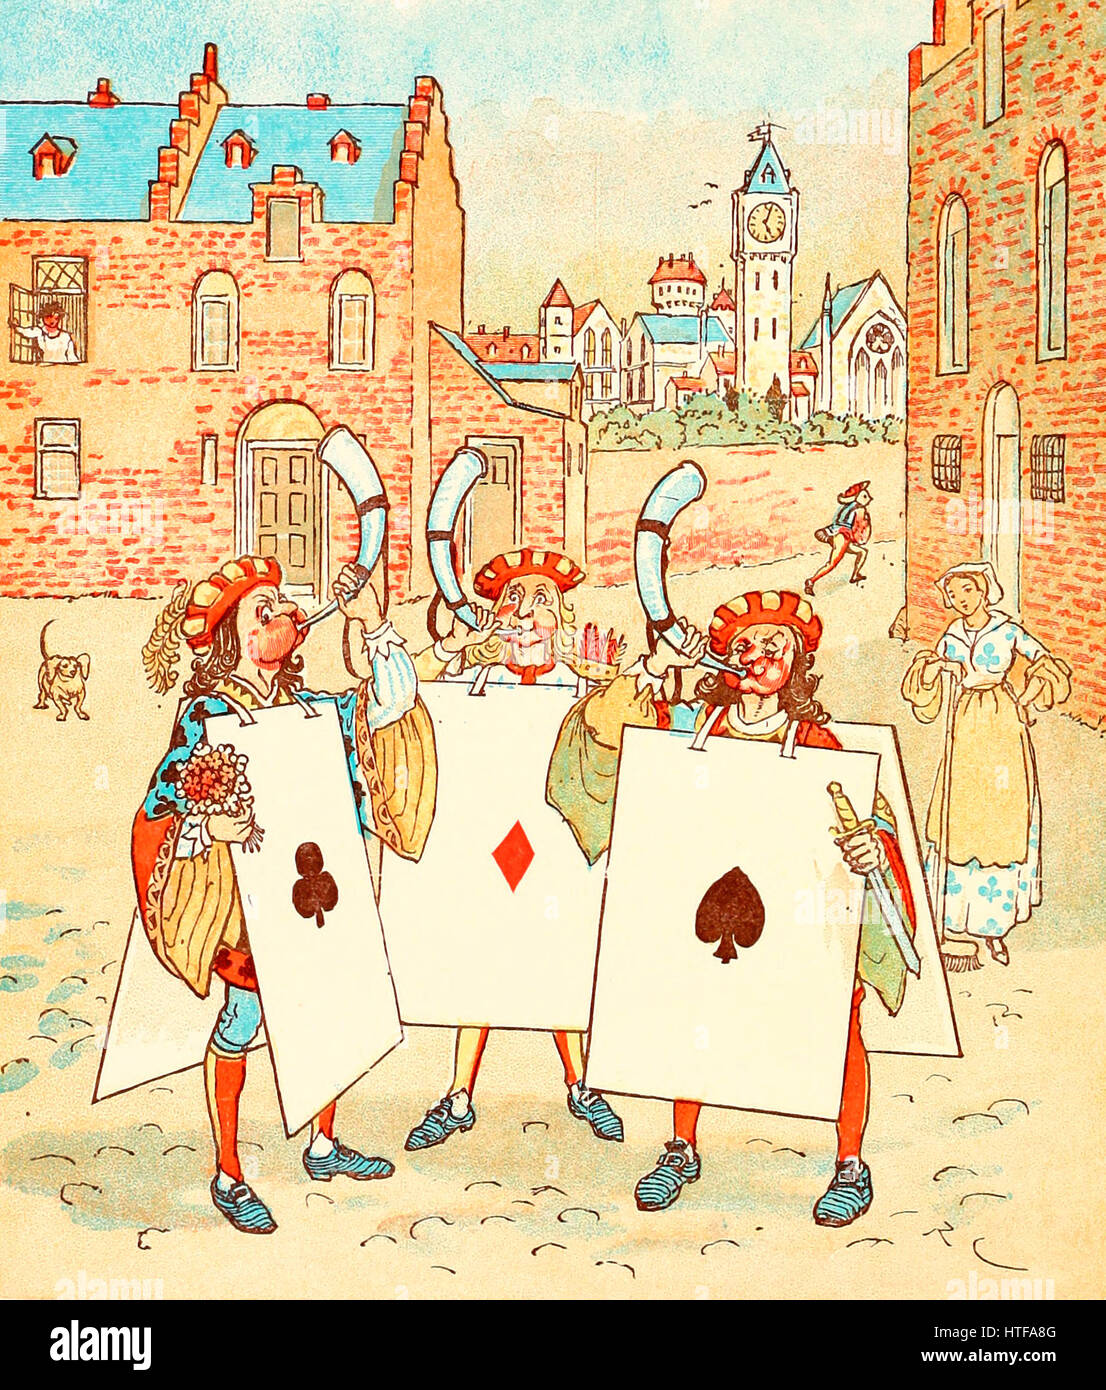 And took them right away - The Knave of Hearts stole the tarts in the Queen of Hearts - Stock Image